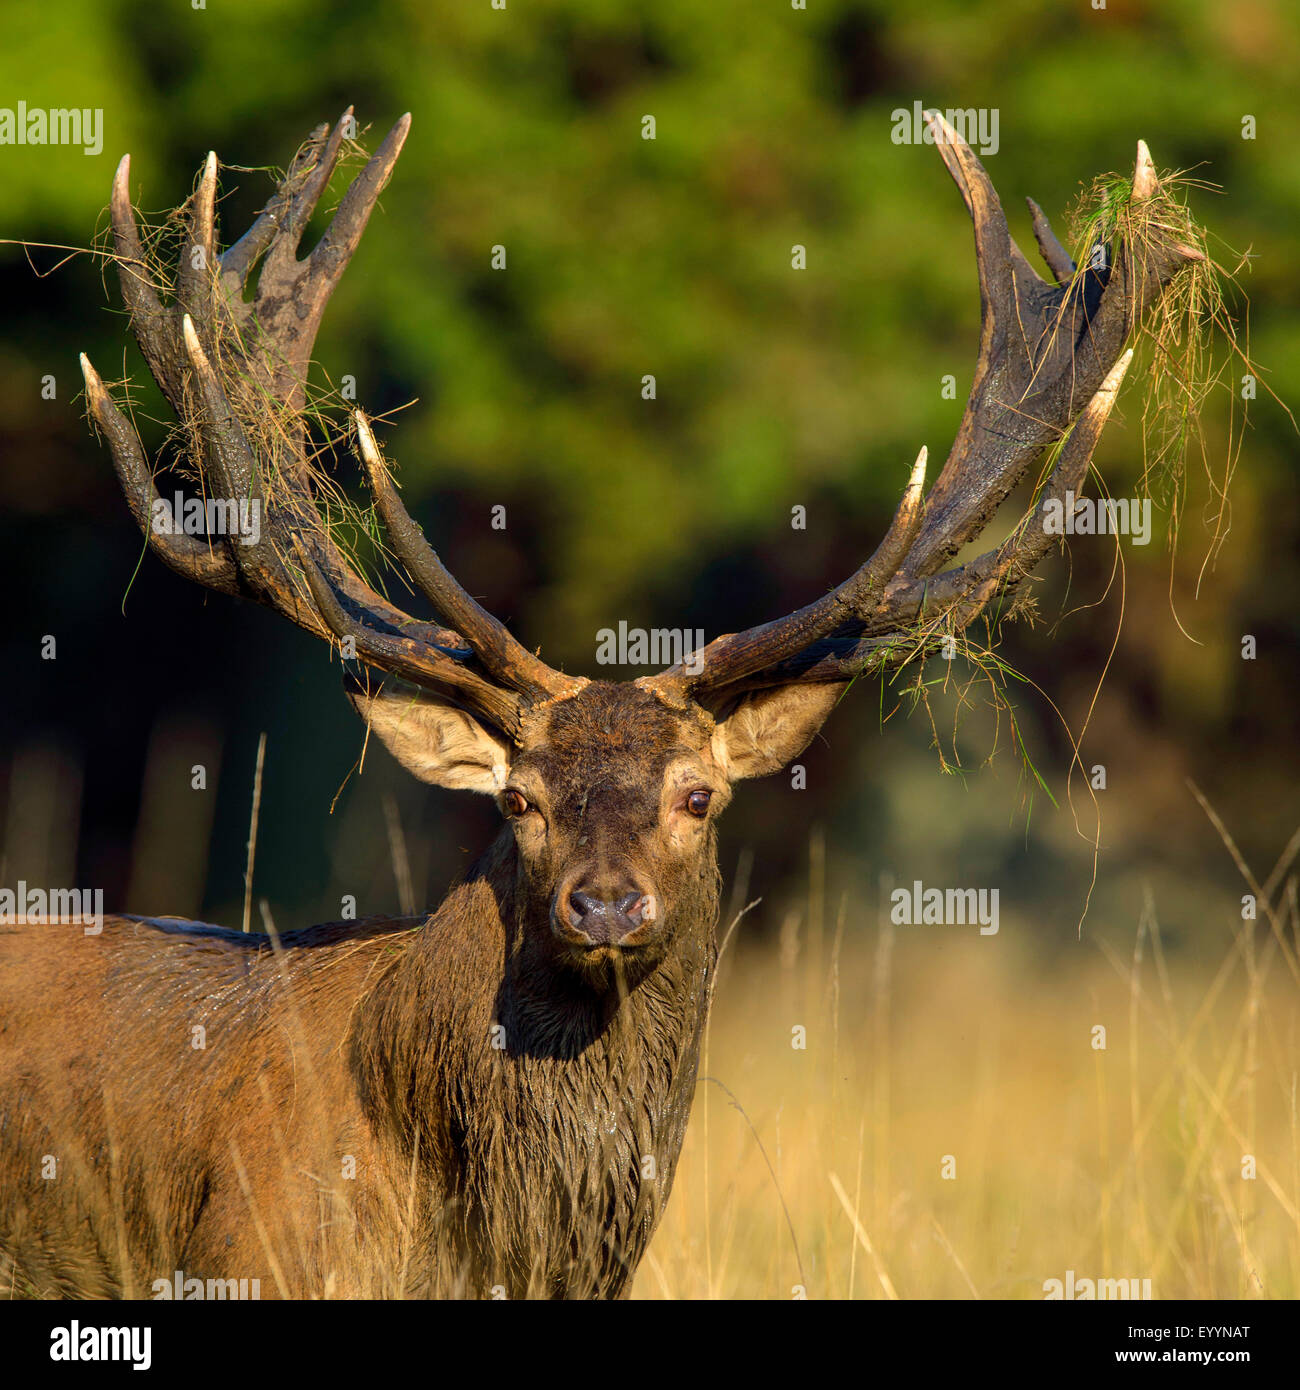 red deer (Cervus elaphus), portrait of a imposing stag, Denmark - Stock Image